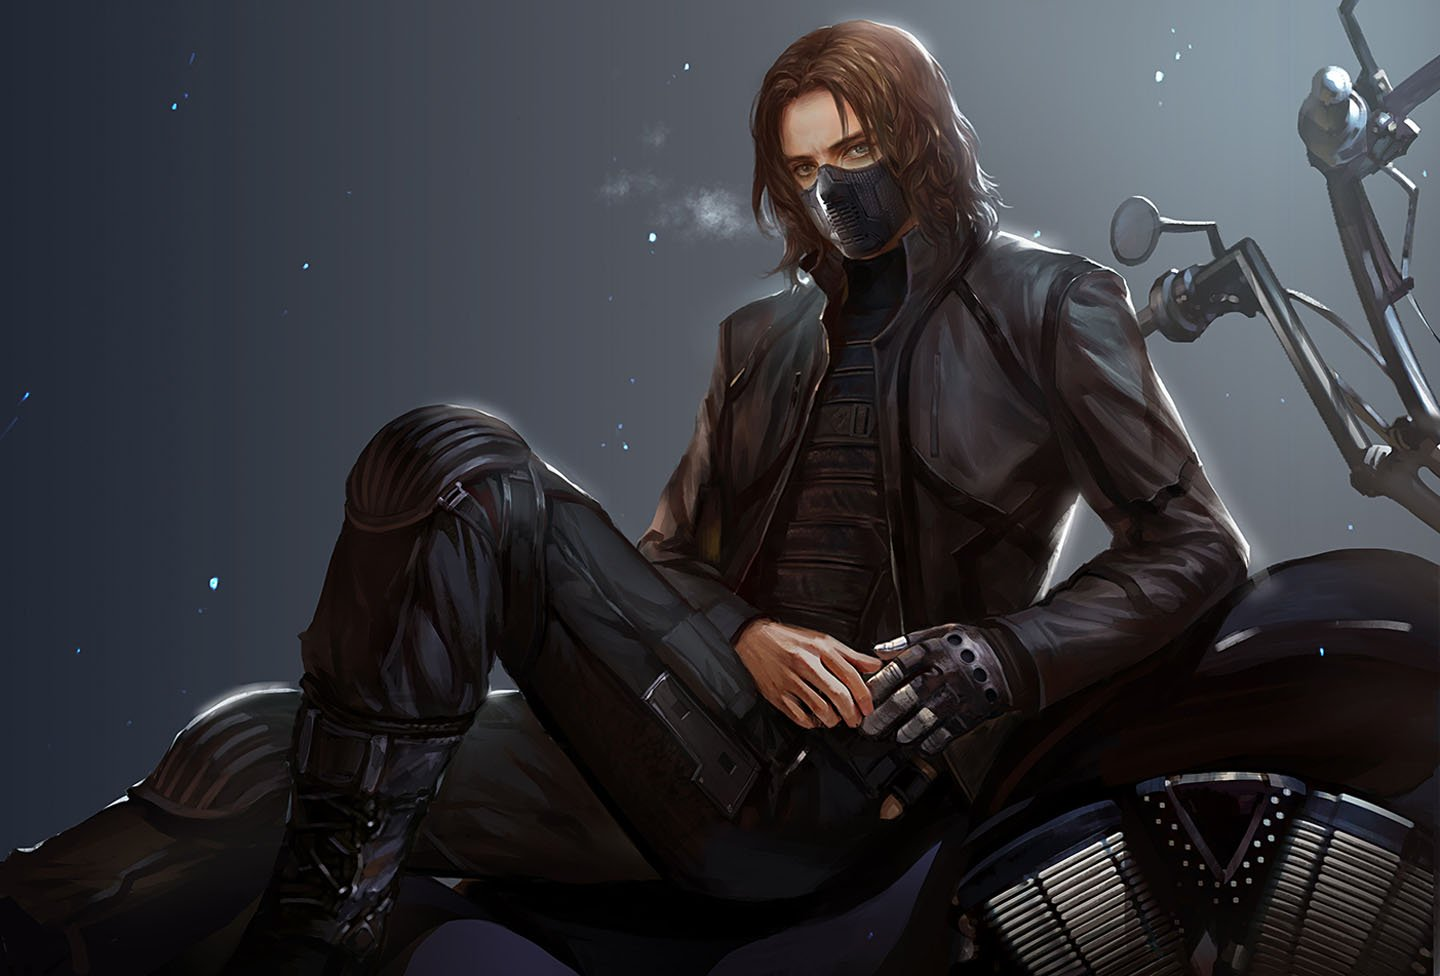 bucky barnes winter soldier wallpaper - photo #27